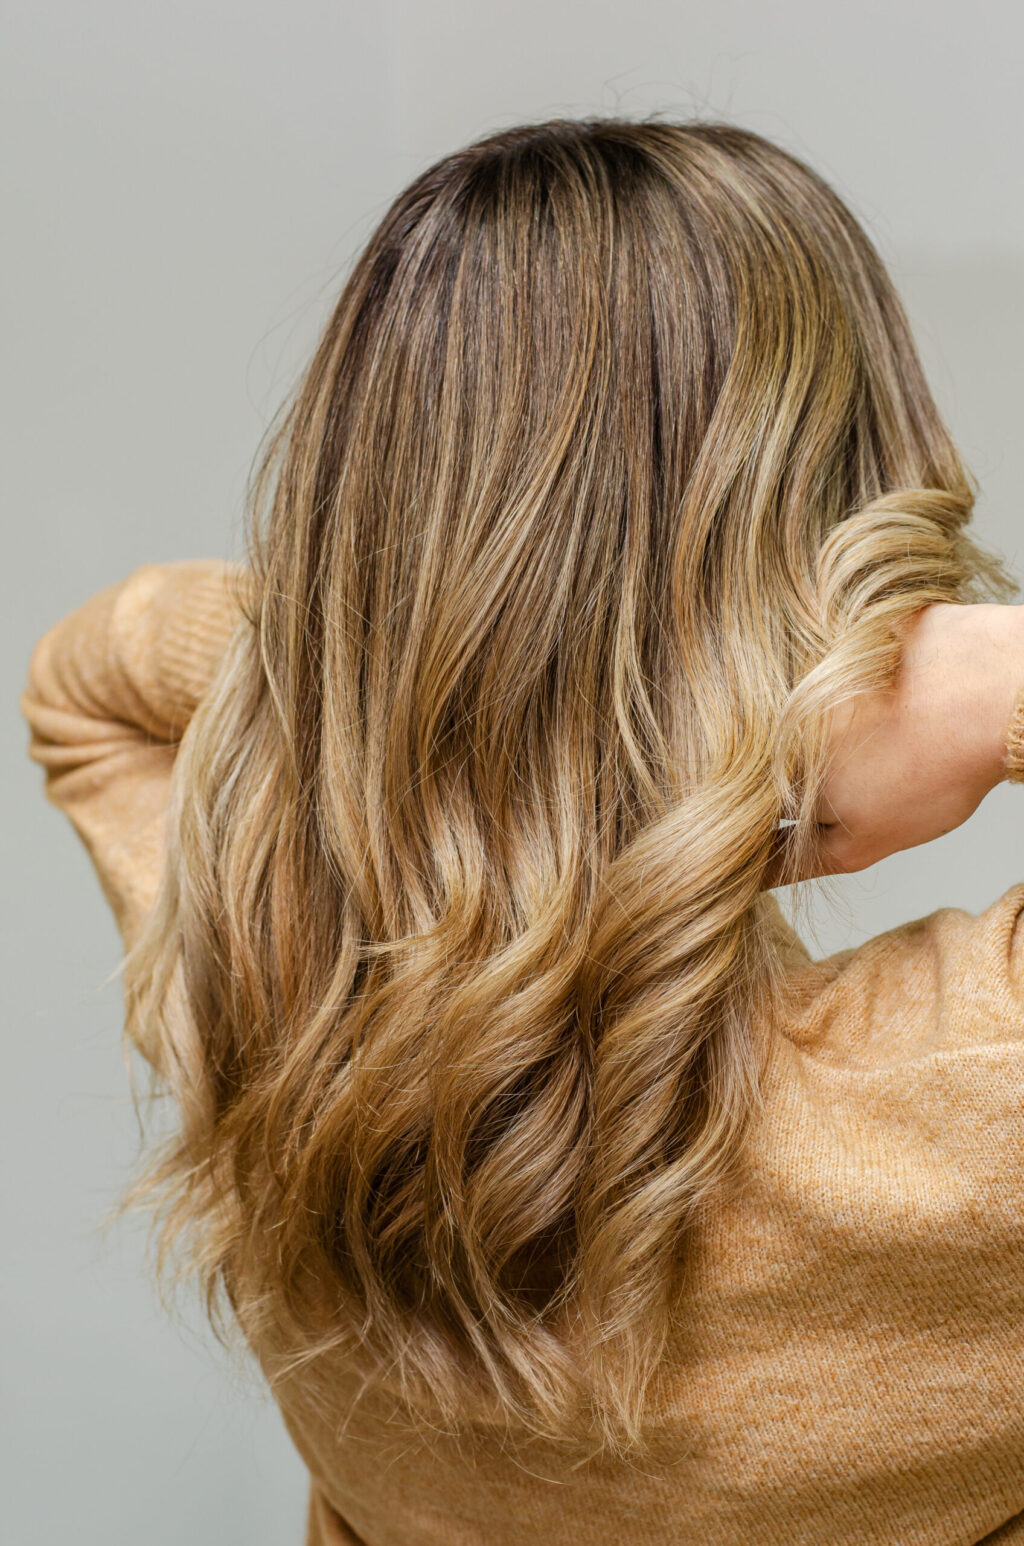 Women with blonde ombre